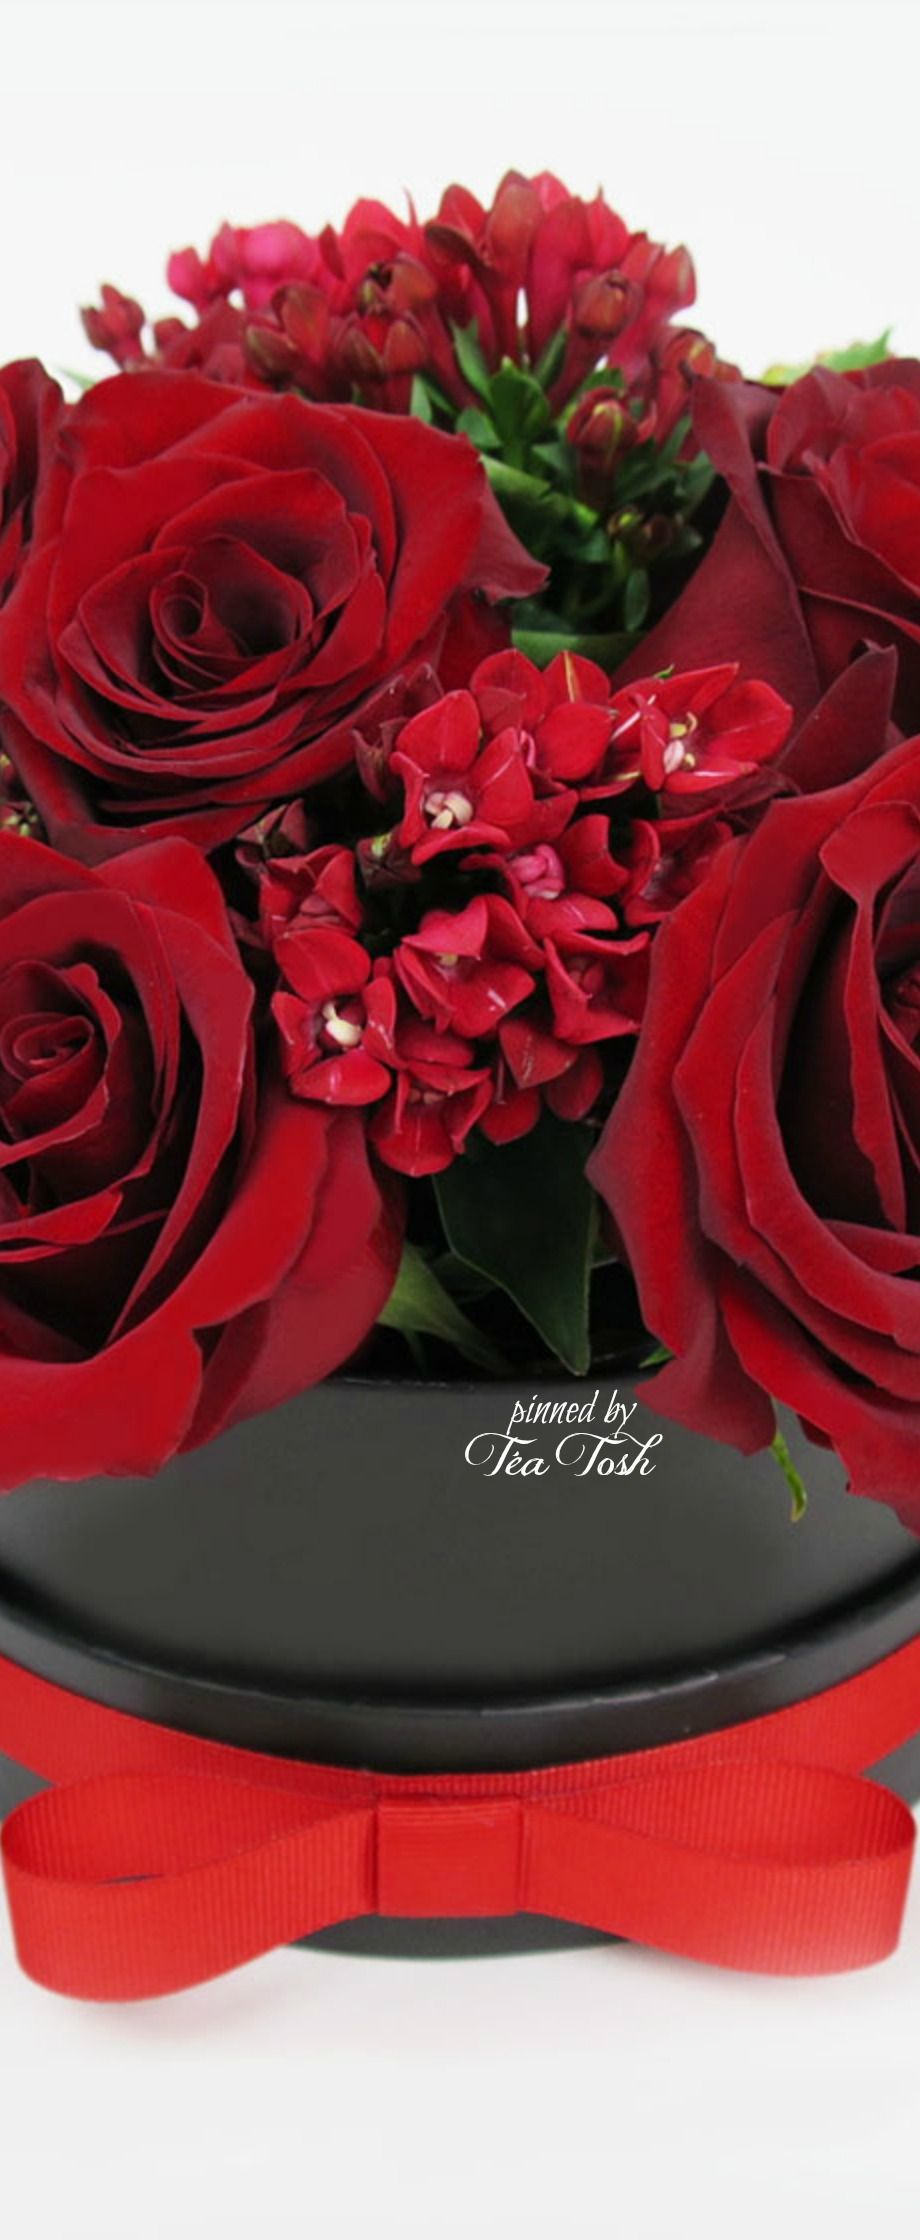 Téa Tosh Rose Gem Bouquet Beautiful red roses, Happy